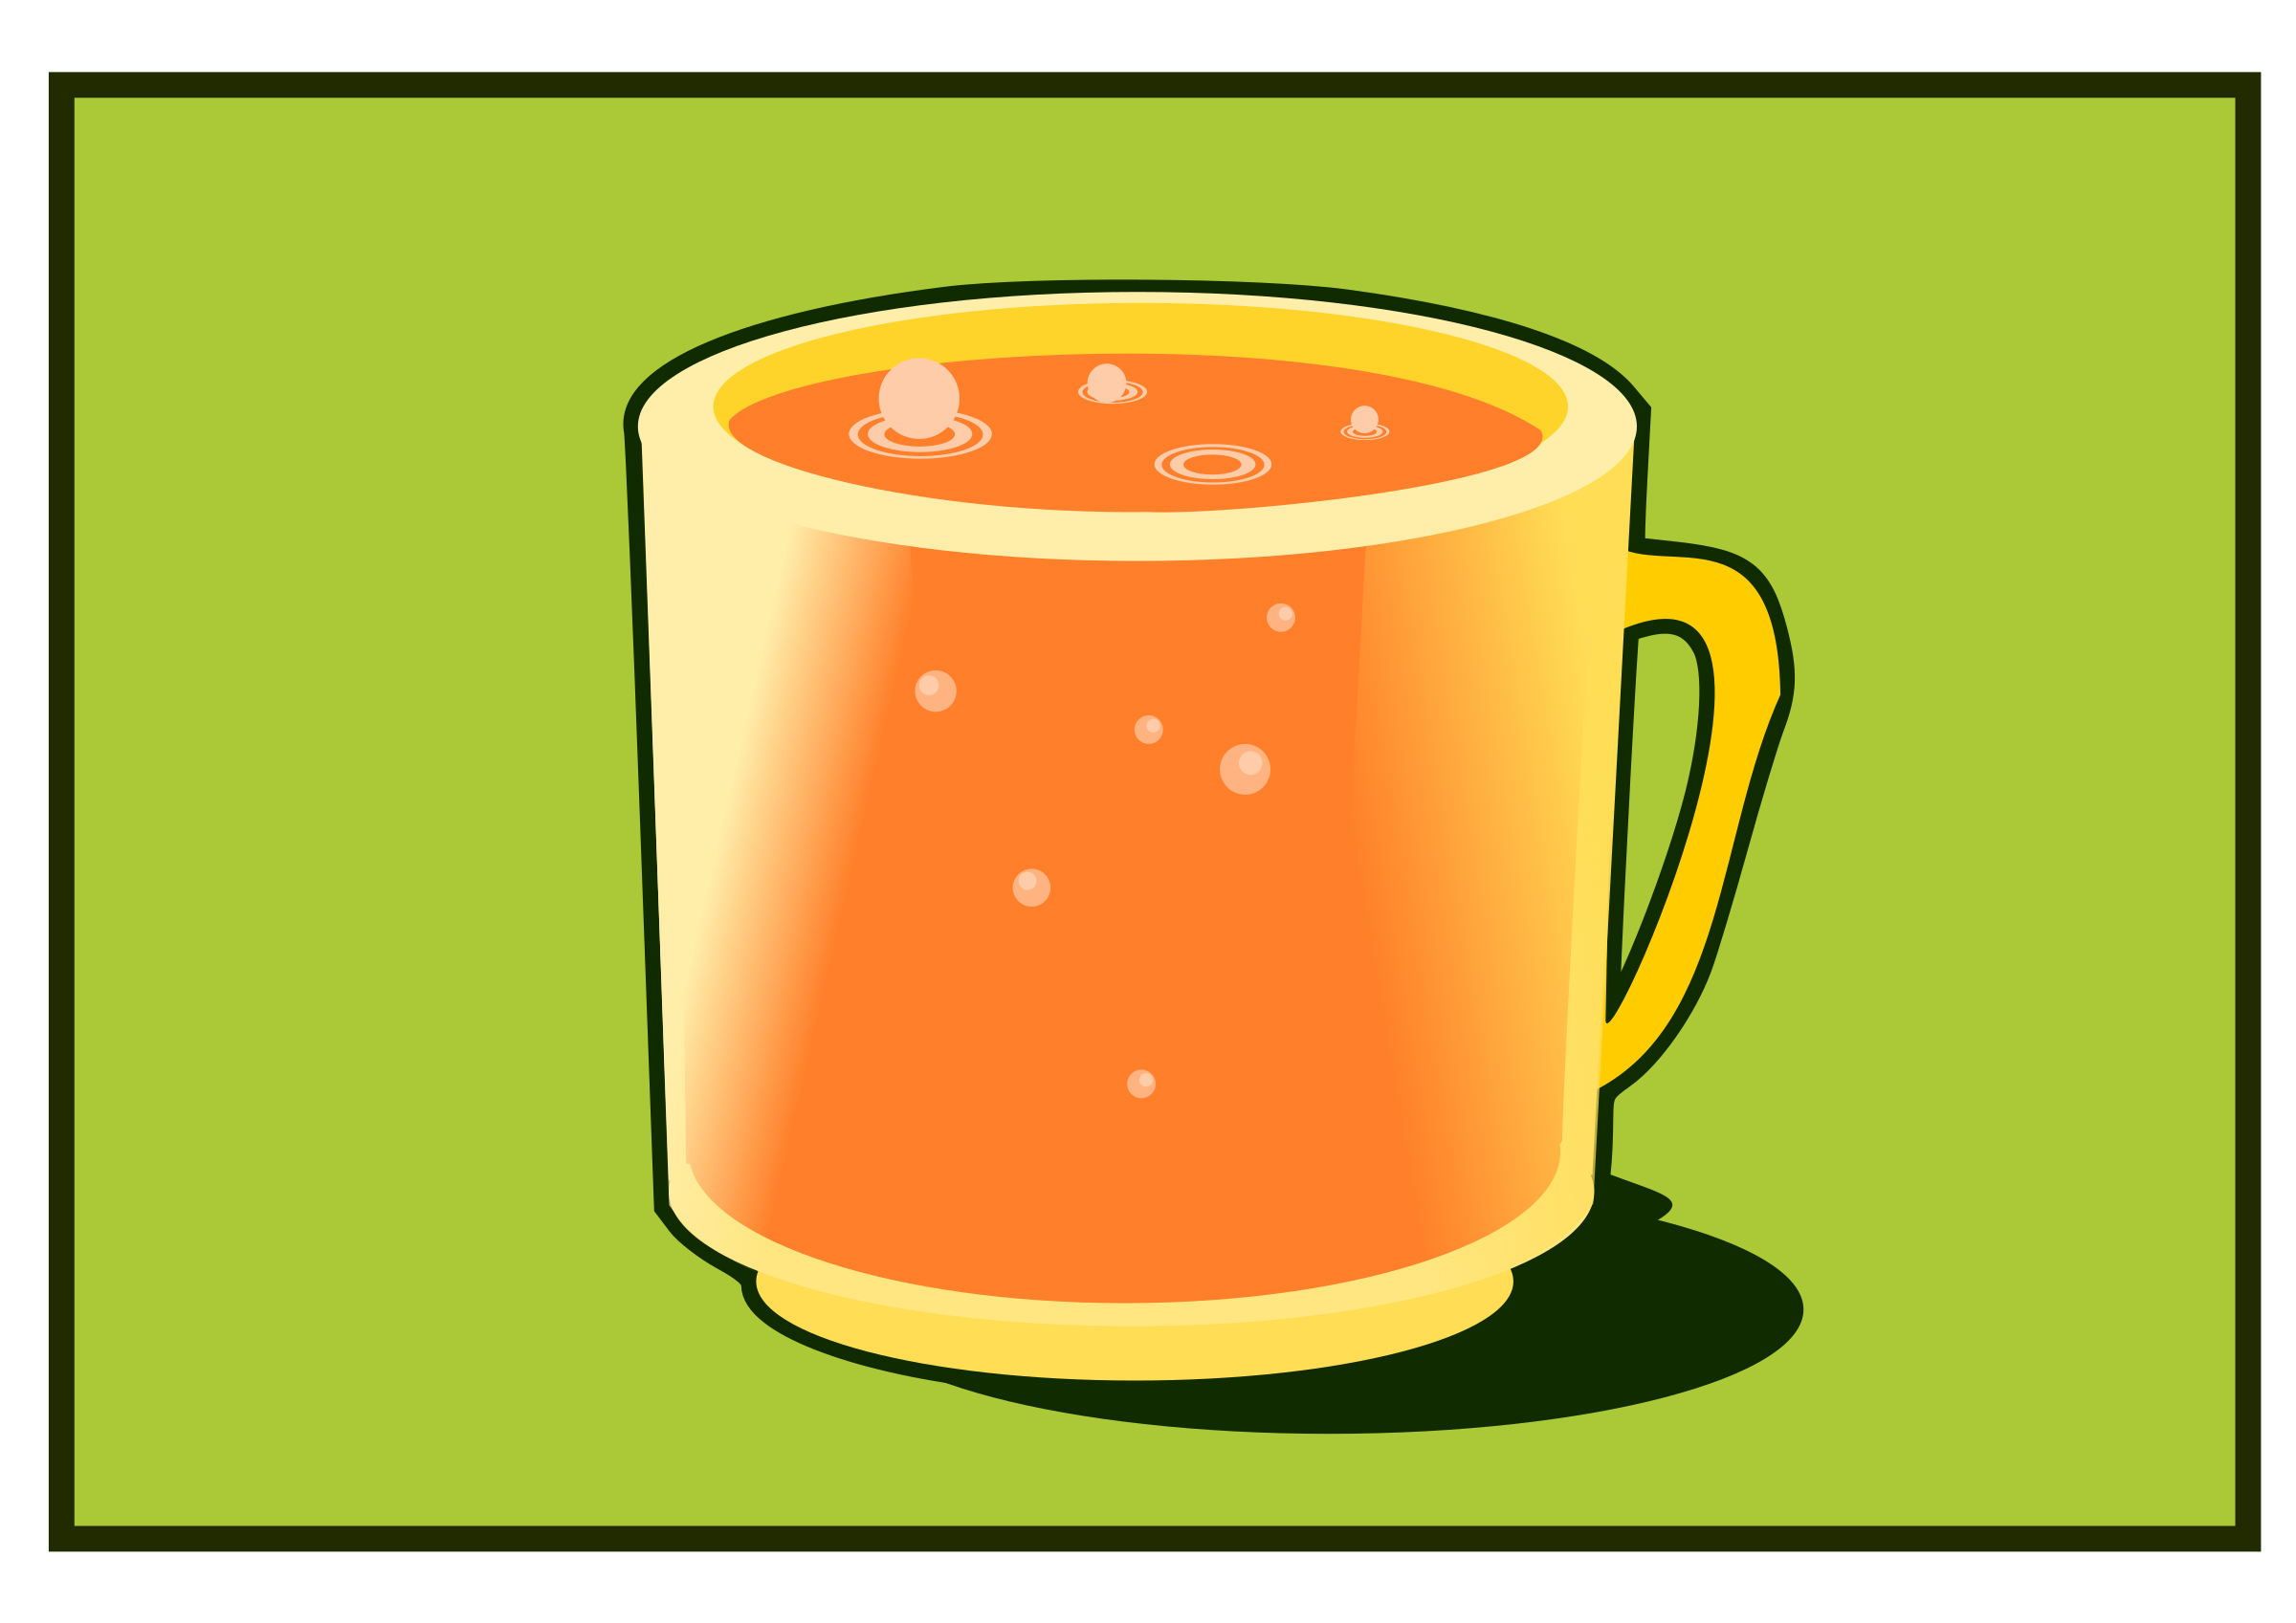 Orange cup by kolbasun